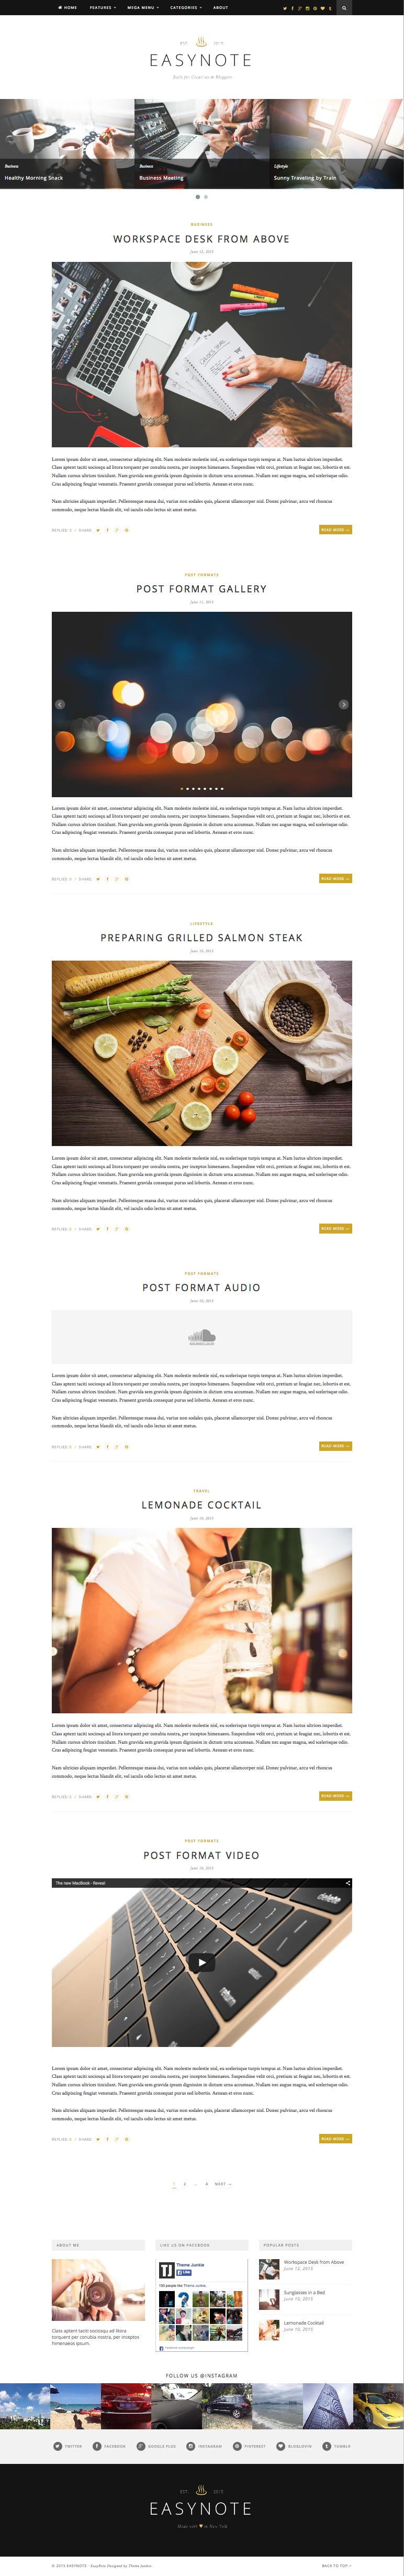 EasyNote SEO Ready WordPress News Blog Theme